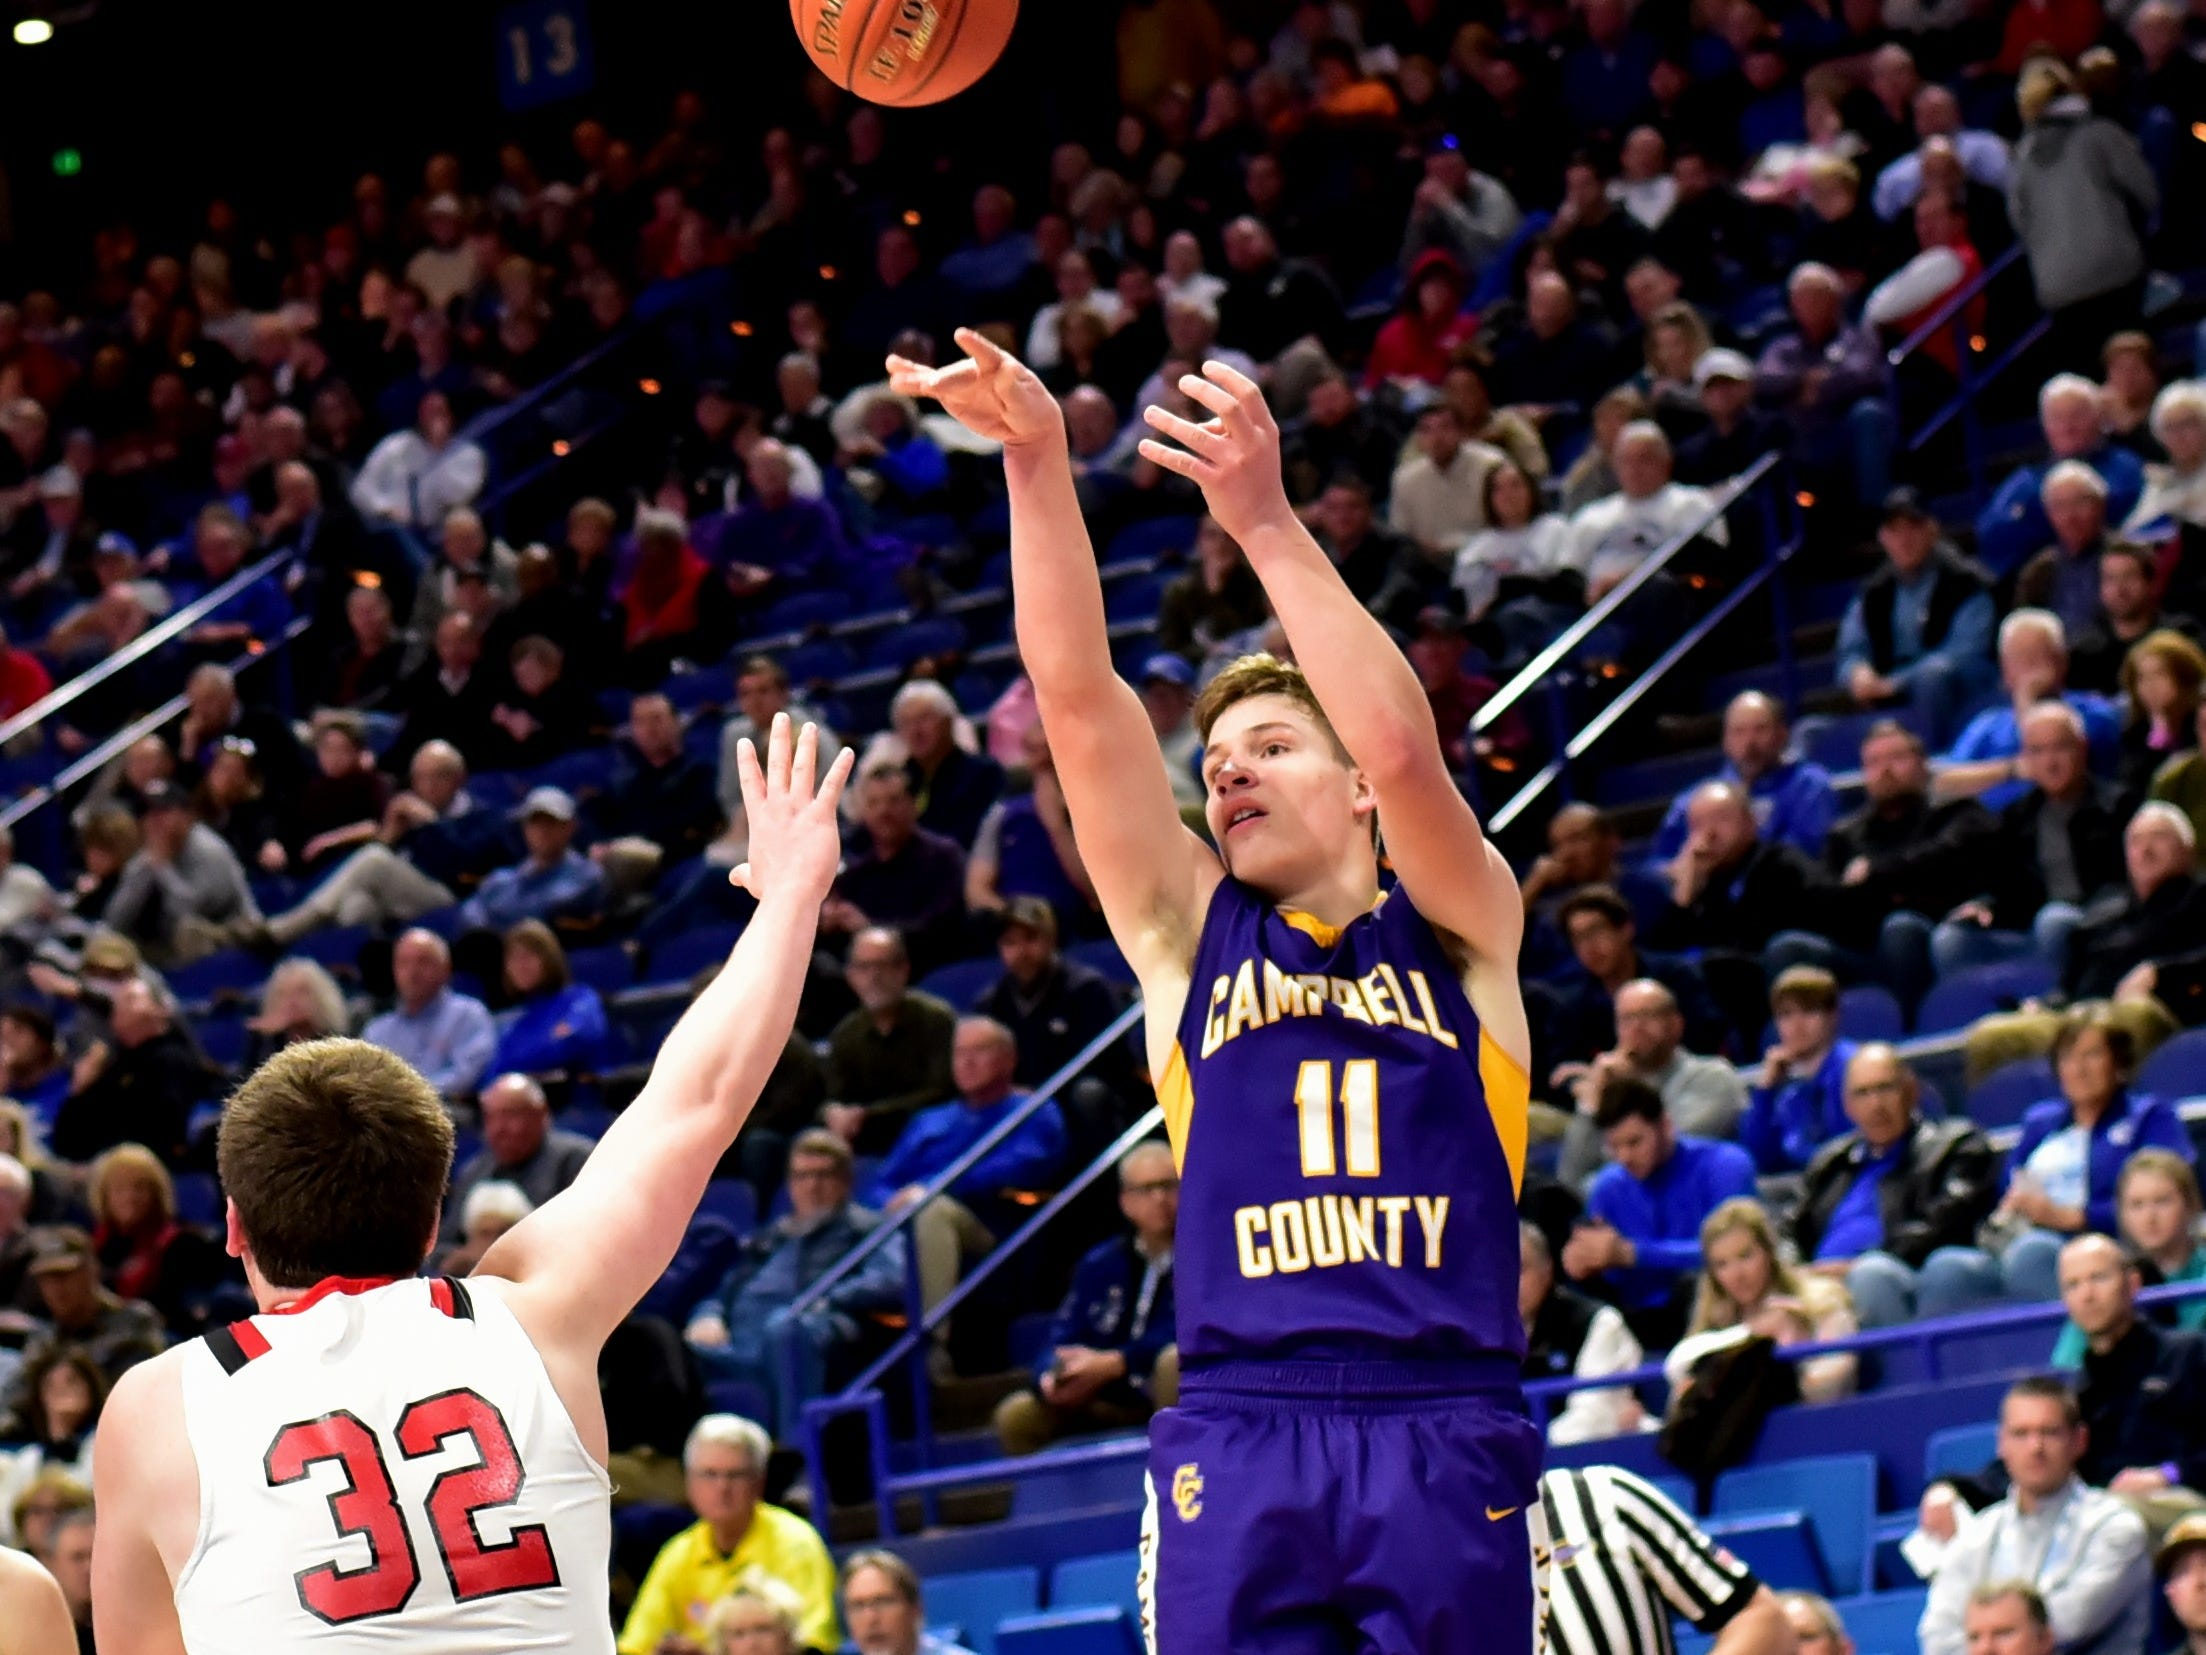 Reid Jolly lifts up a three point shot for Campbell County at the KHSAA Sweet 16 Tournament at Rupp Arena in Lexington, KY, March 6, 2019